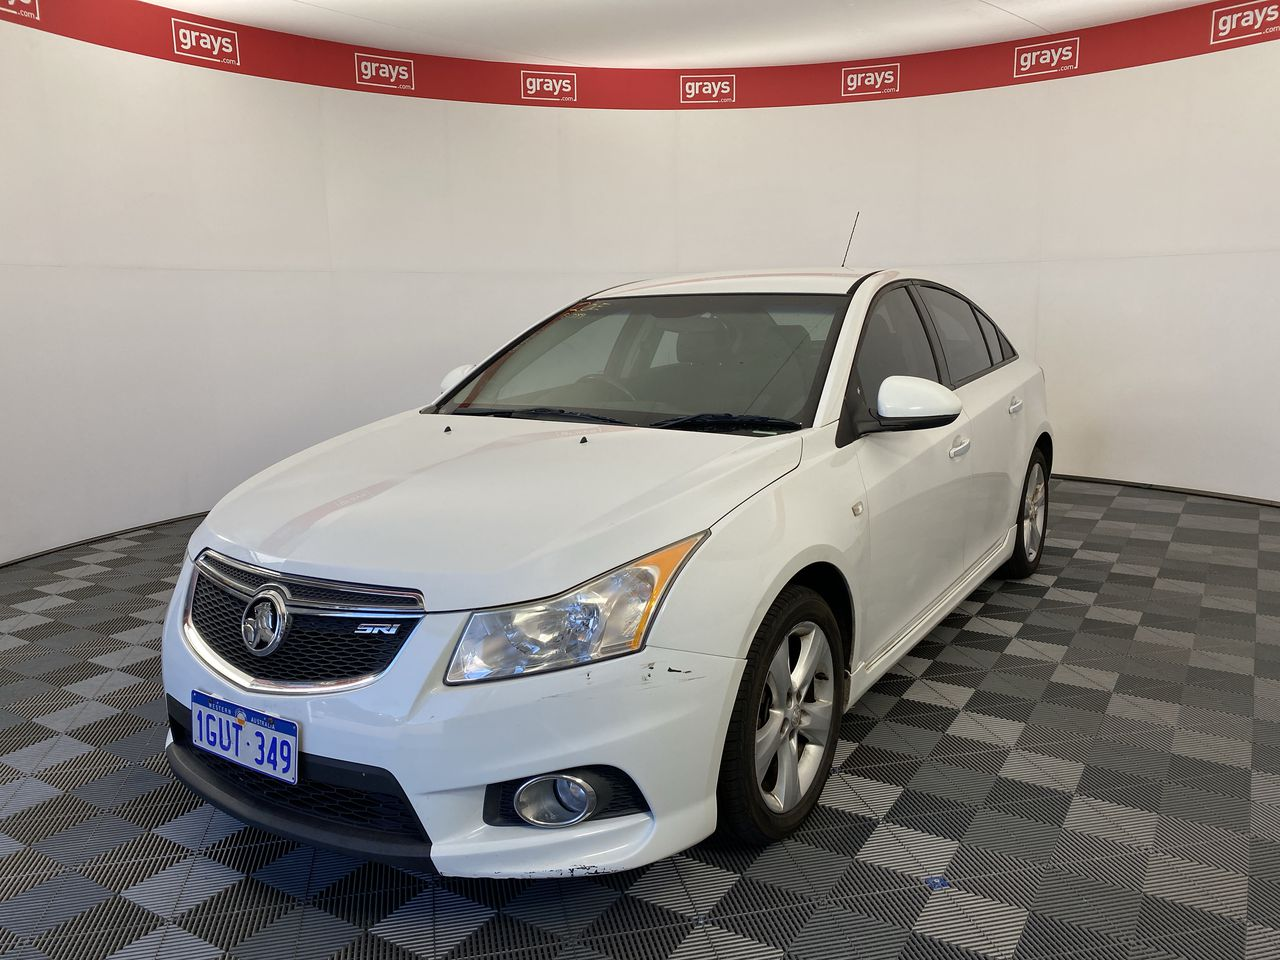 2012 Holden Cruze SRI JH Automatic Sedan